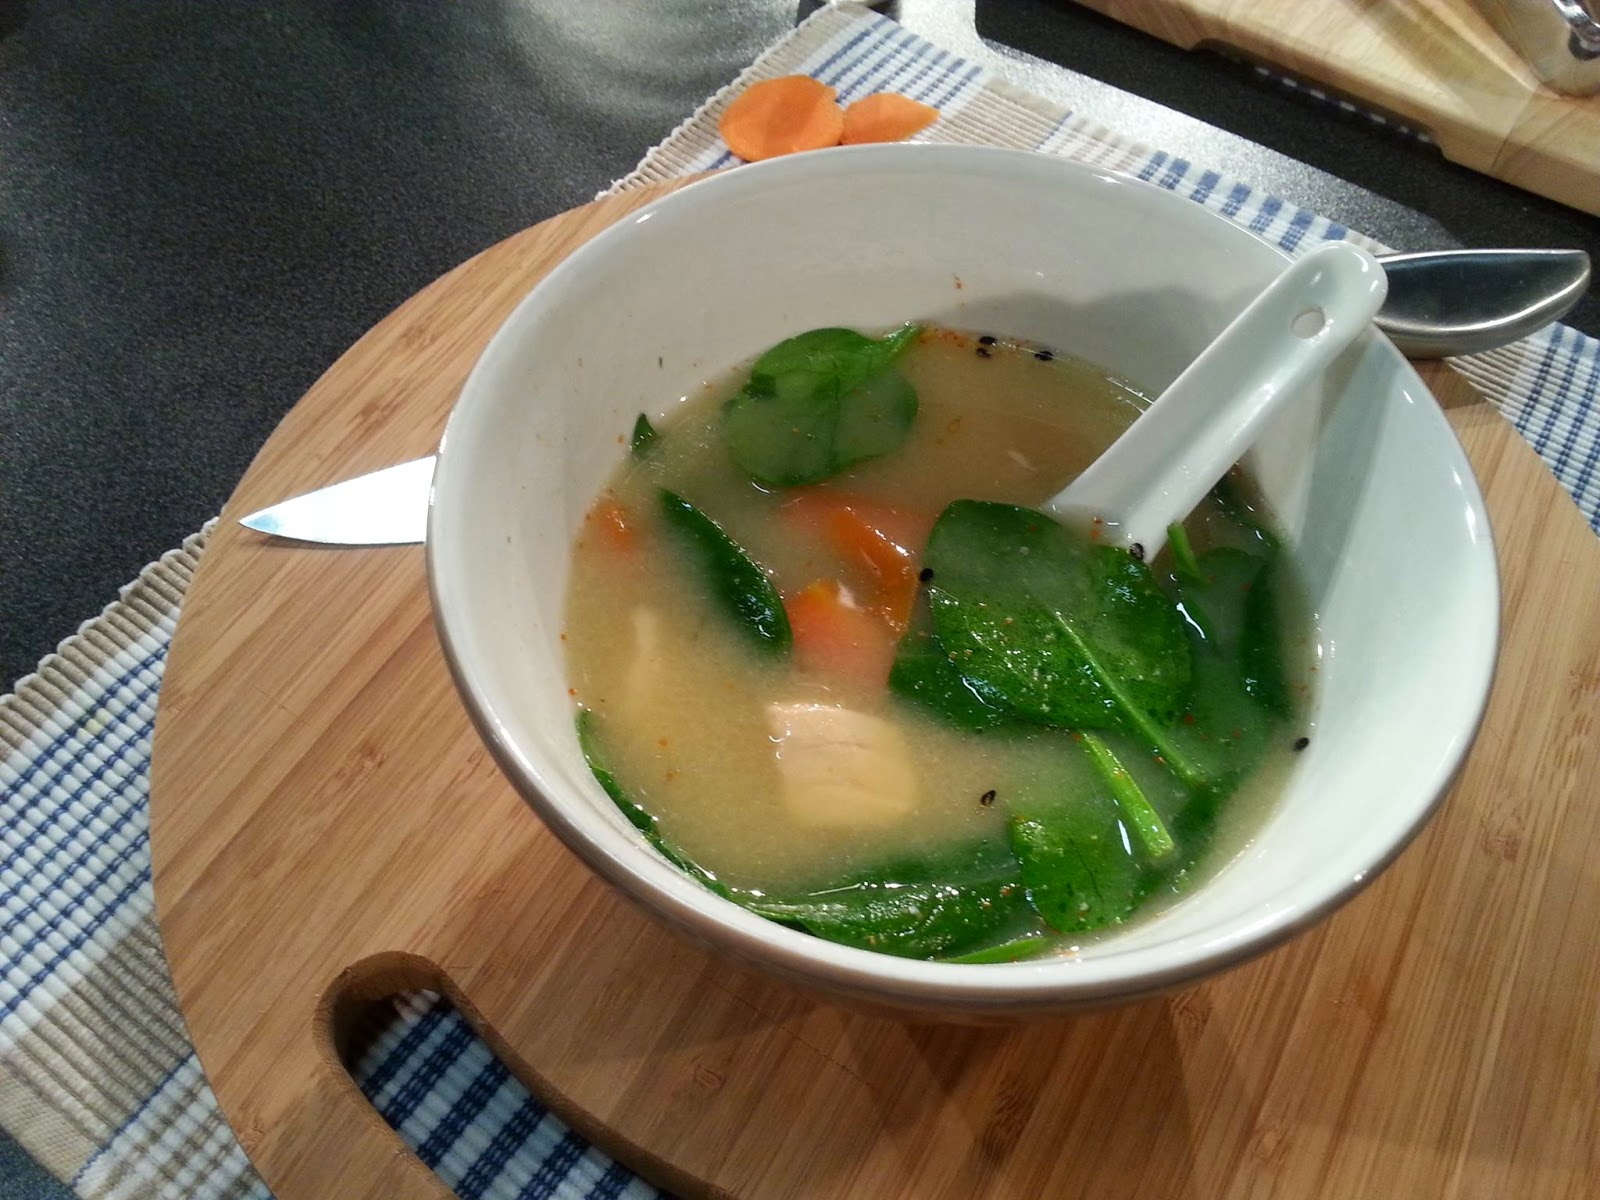 ... Japanese Cooking: Salmon & Spinach Miso Soup on TV3's Late Lunch ...